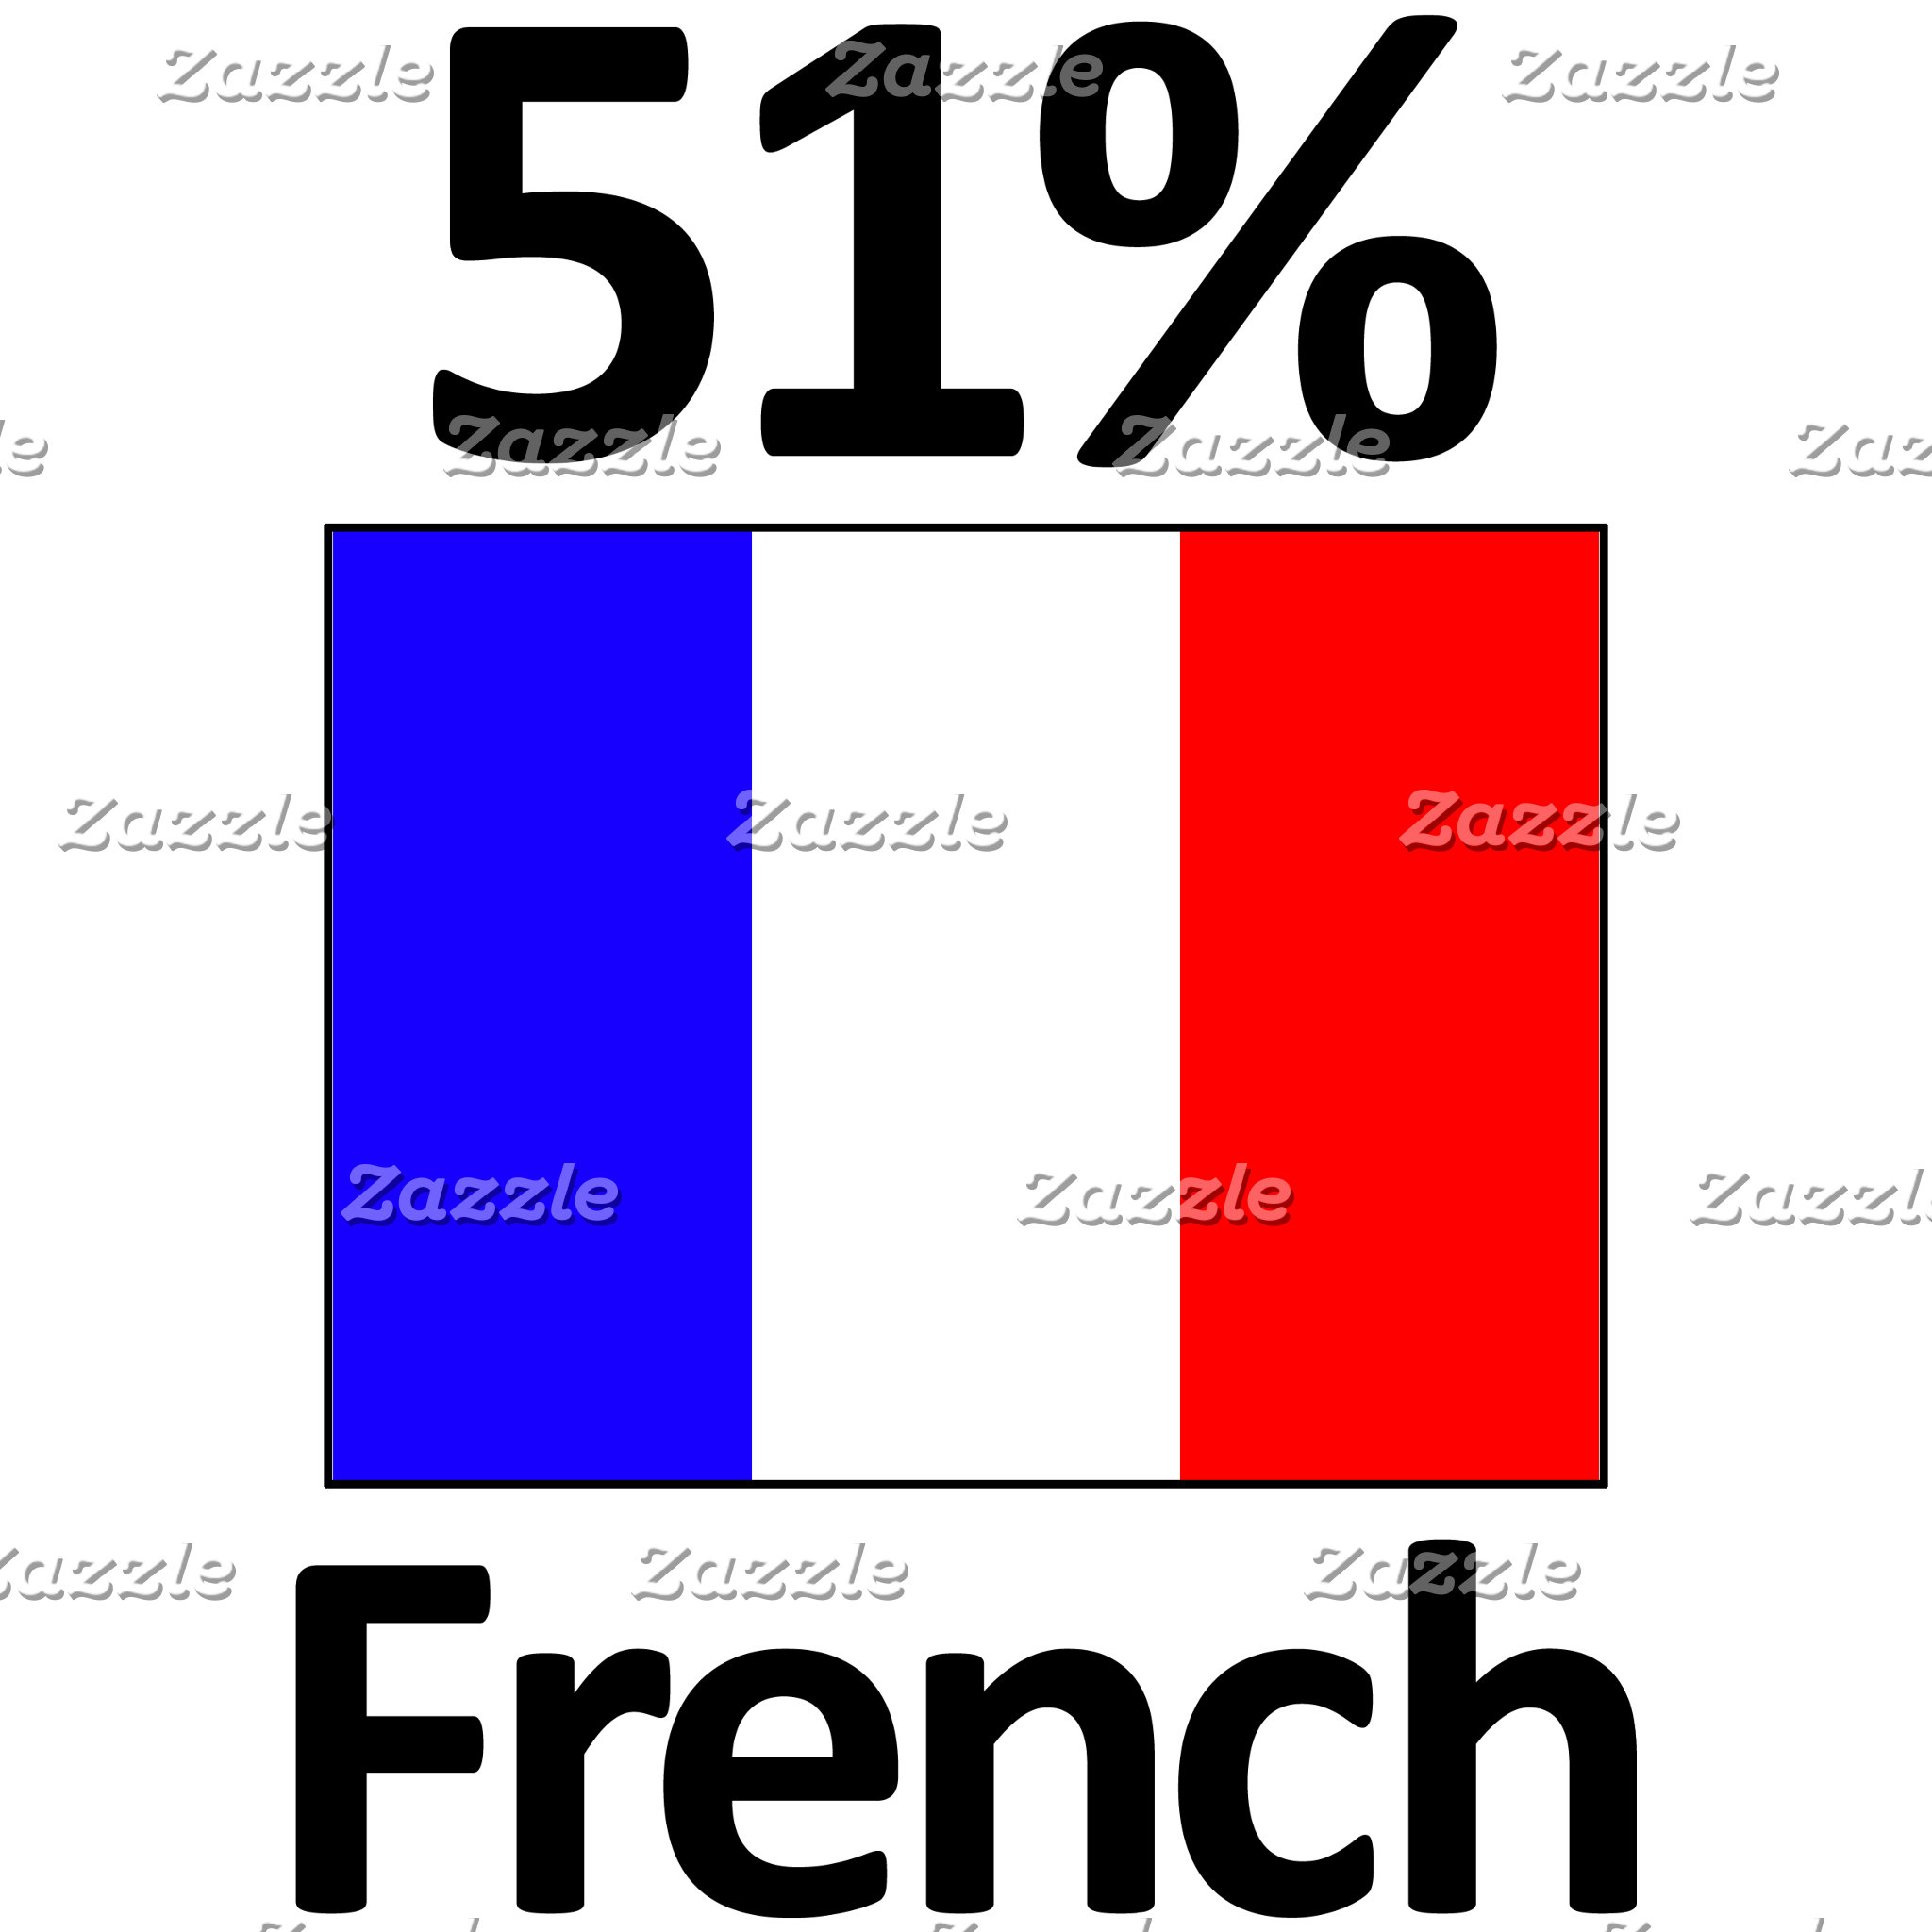 51% French